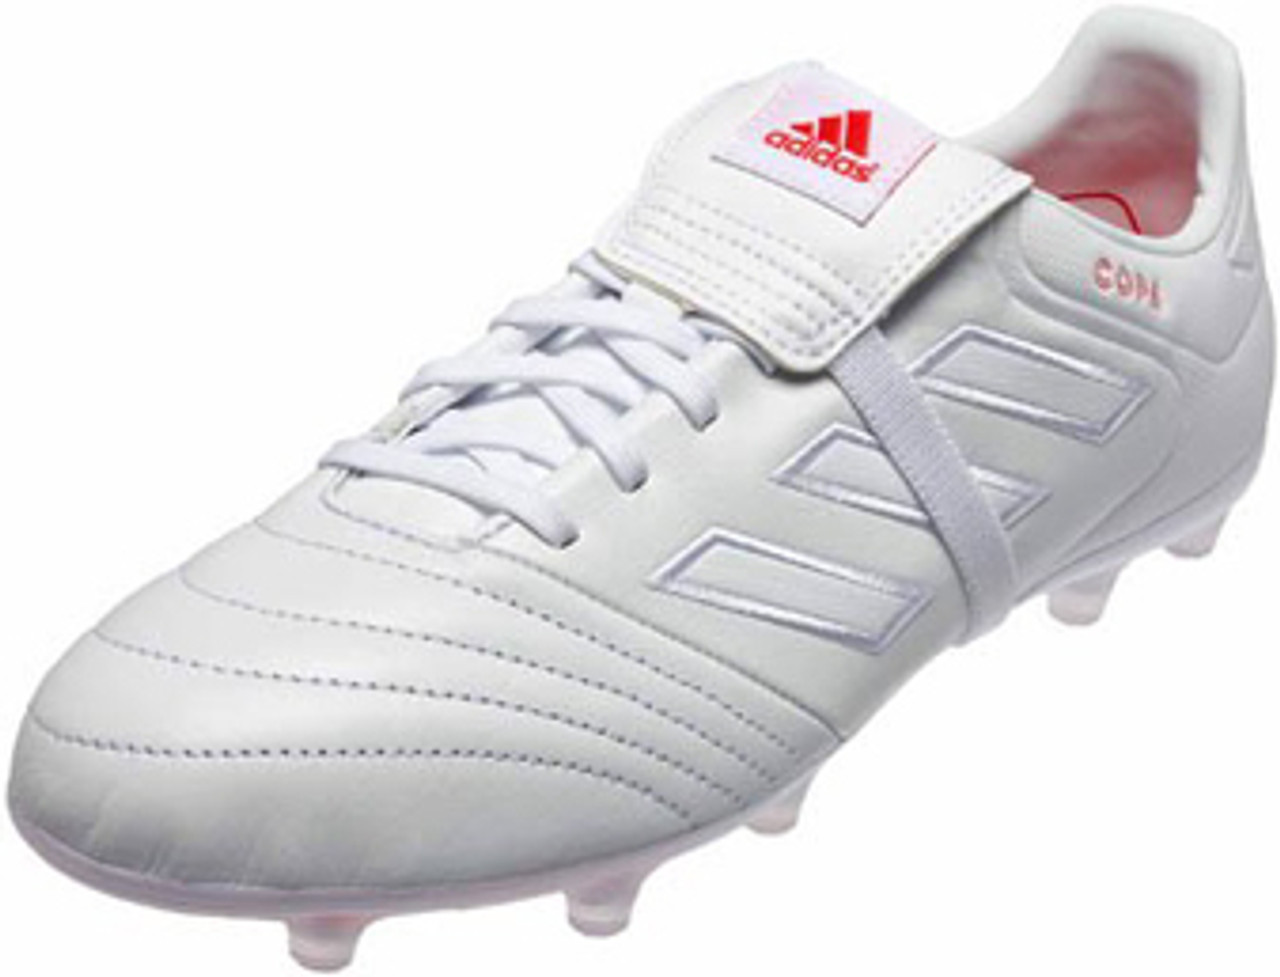 the best attitude 0bf37 e9825 ADIDAS COPA GLORO 17.2 FG White   Real Coral